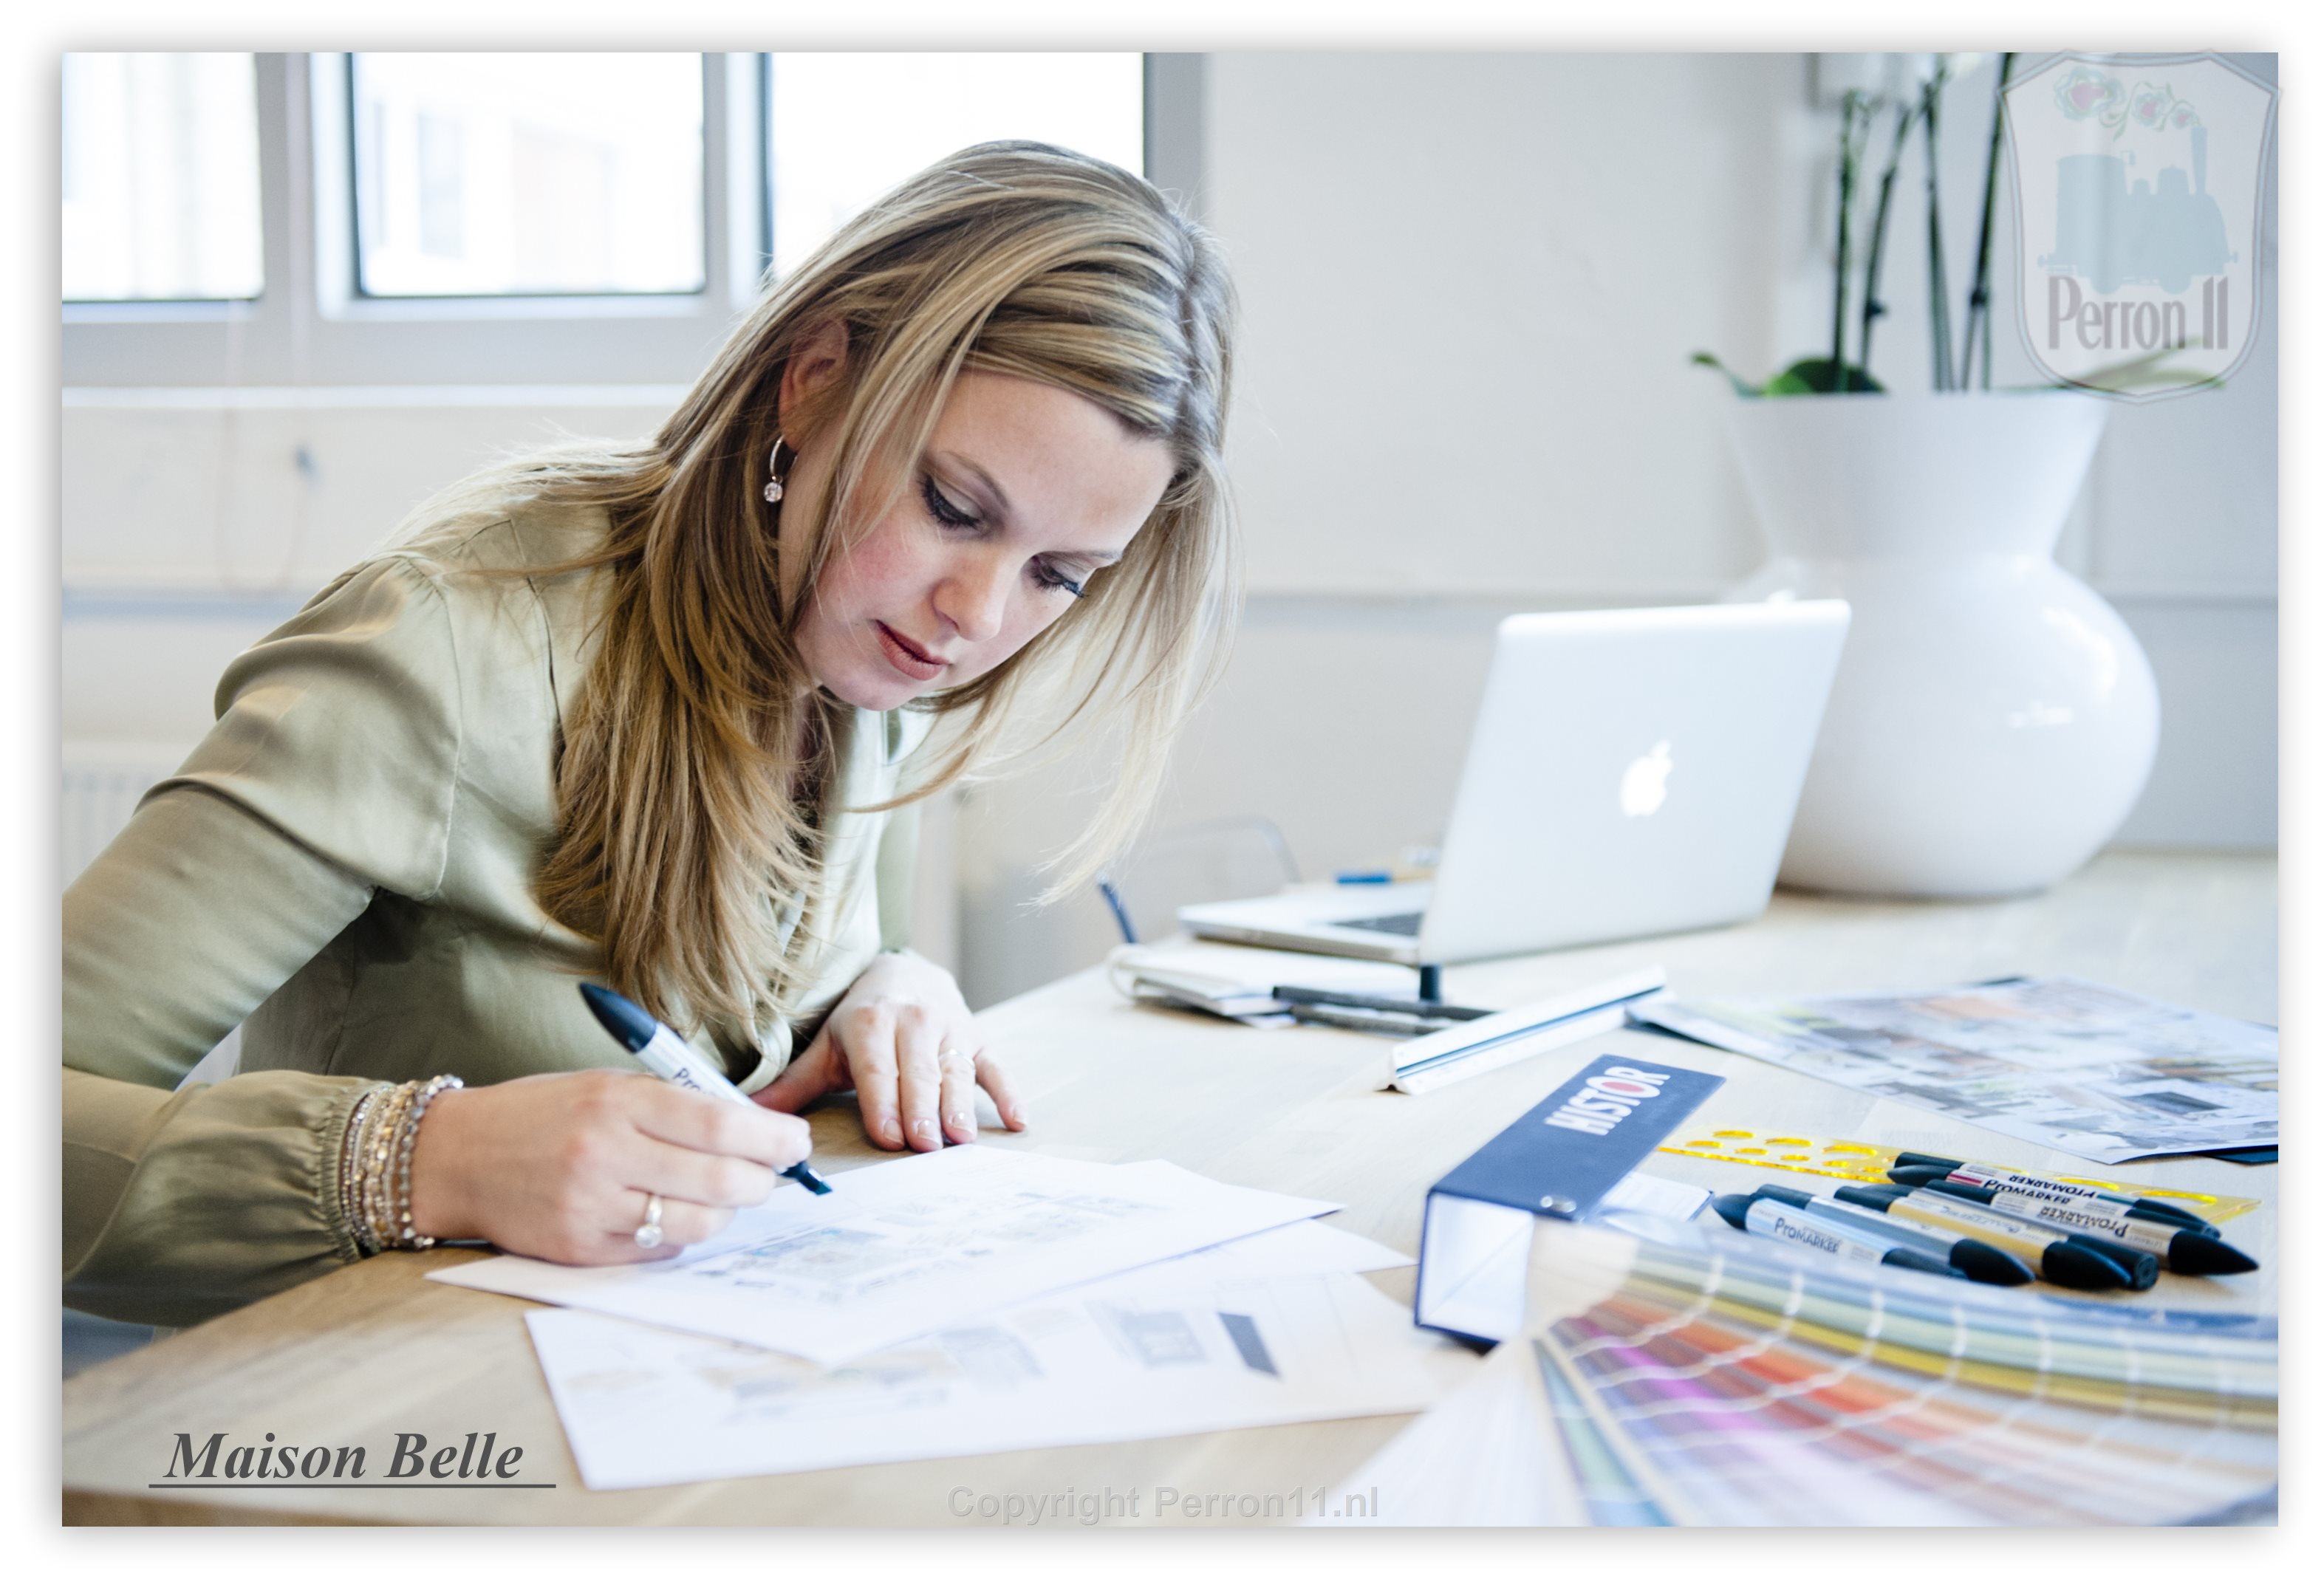 interior designer Marije Maison Belle at work